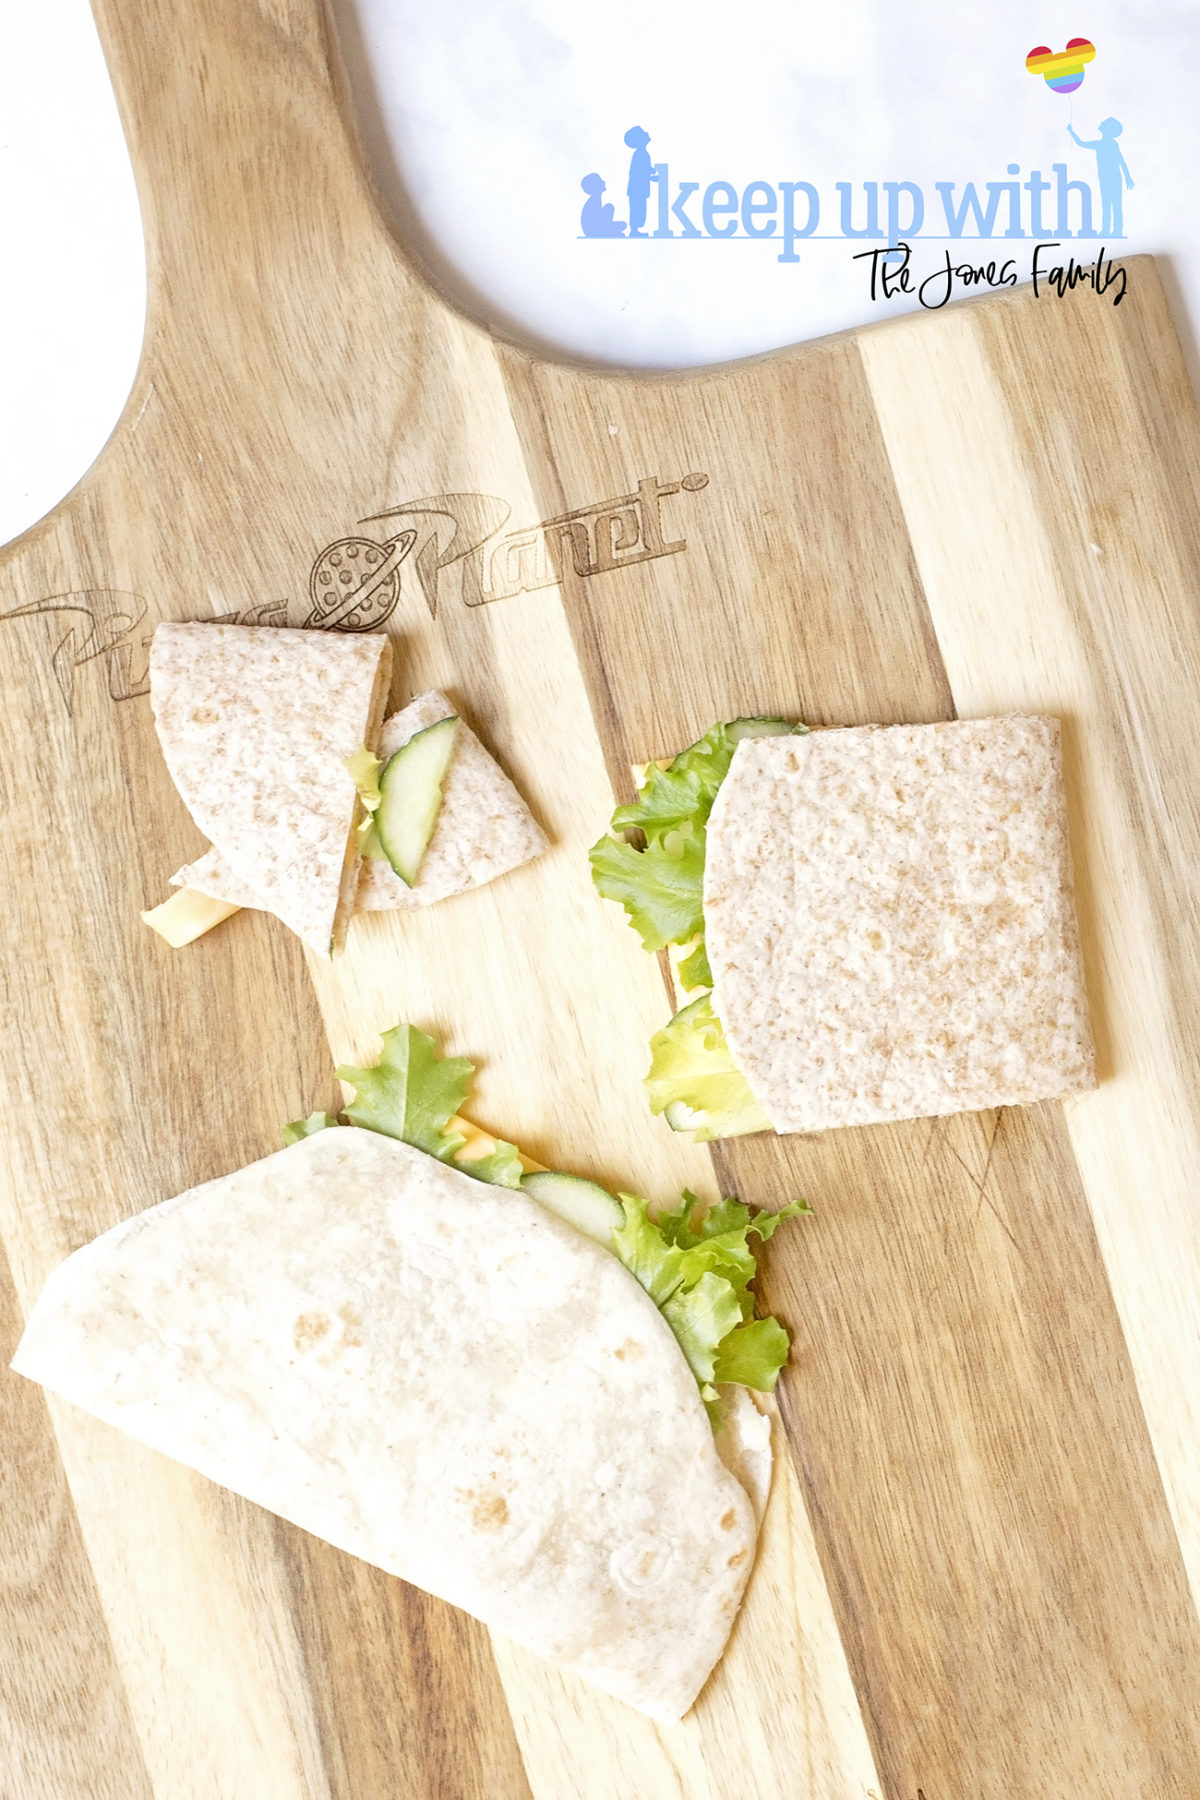 Image shows step two of how to make a book sandwich wrap. On a toy story wooden chopping board sits two wraps filled with ingredients, folder over and one of them is chopped into a booklet shape. Image by Sara-Jayne from Keep Up With The Jones Family.